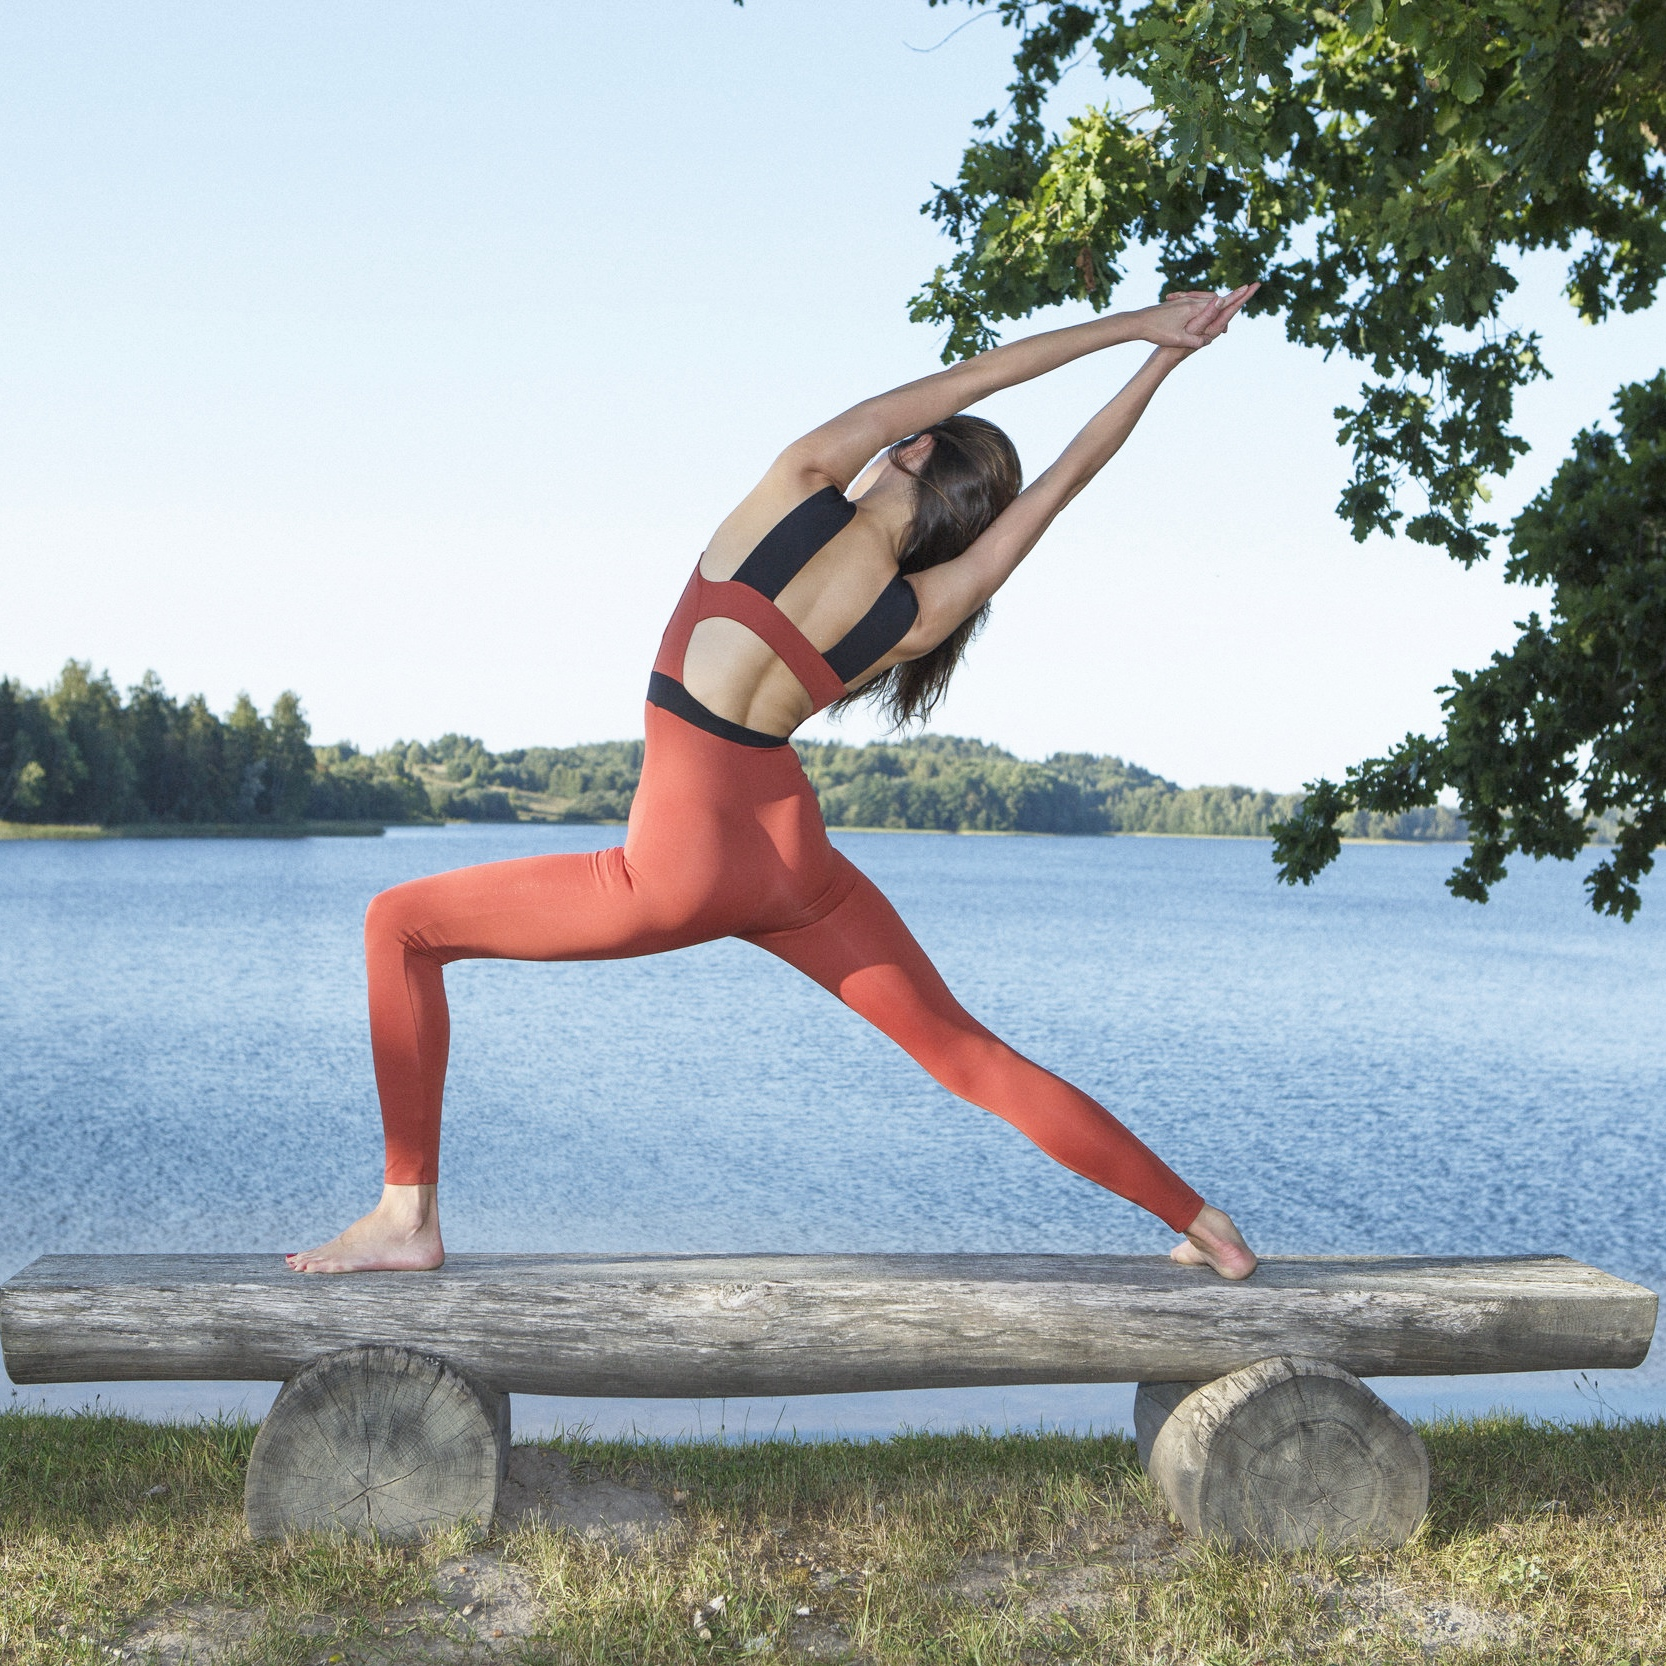 find your Fitness flow - It's important to feel good when you're in flow, and what you wear can really help you remain confident throughout. We are just loving lifewear brand, Silou. They are sustainable and seriously comfortable.'When I wear Silou, I feel feminine, confident and ready to take on the world. This is how we want our customers to feel – confident in their individual SILOU-ettes. If you are feeling uninspired about moving your body or starting a new routine, our feminine shapes are designed to make you feel good in your skin'. Phoebe Greenacre - Silou Co-Founder